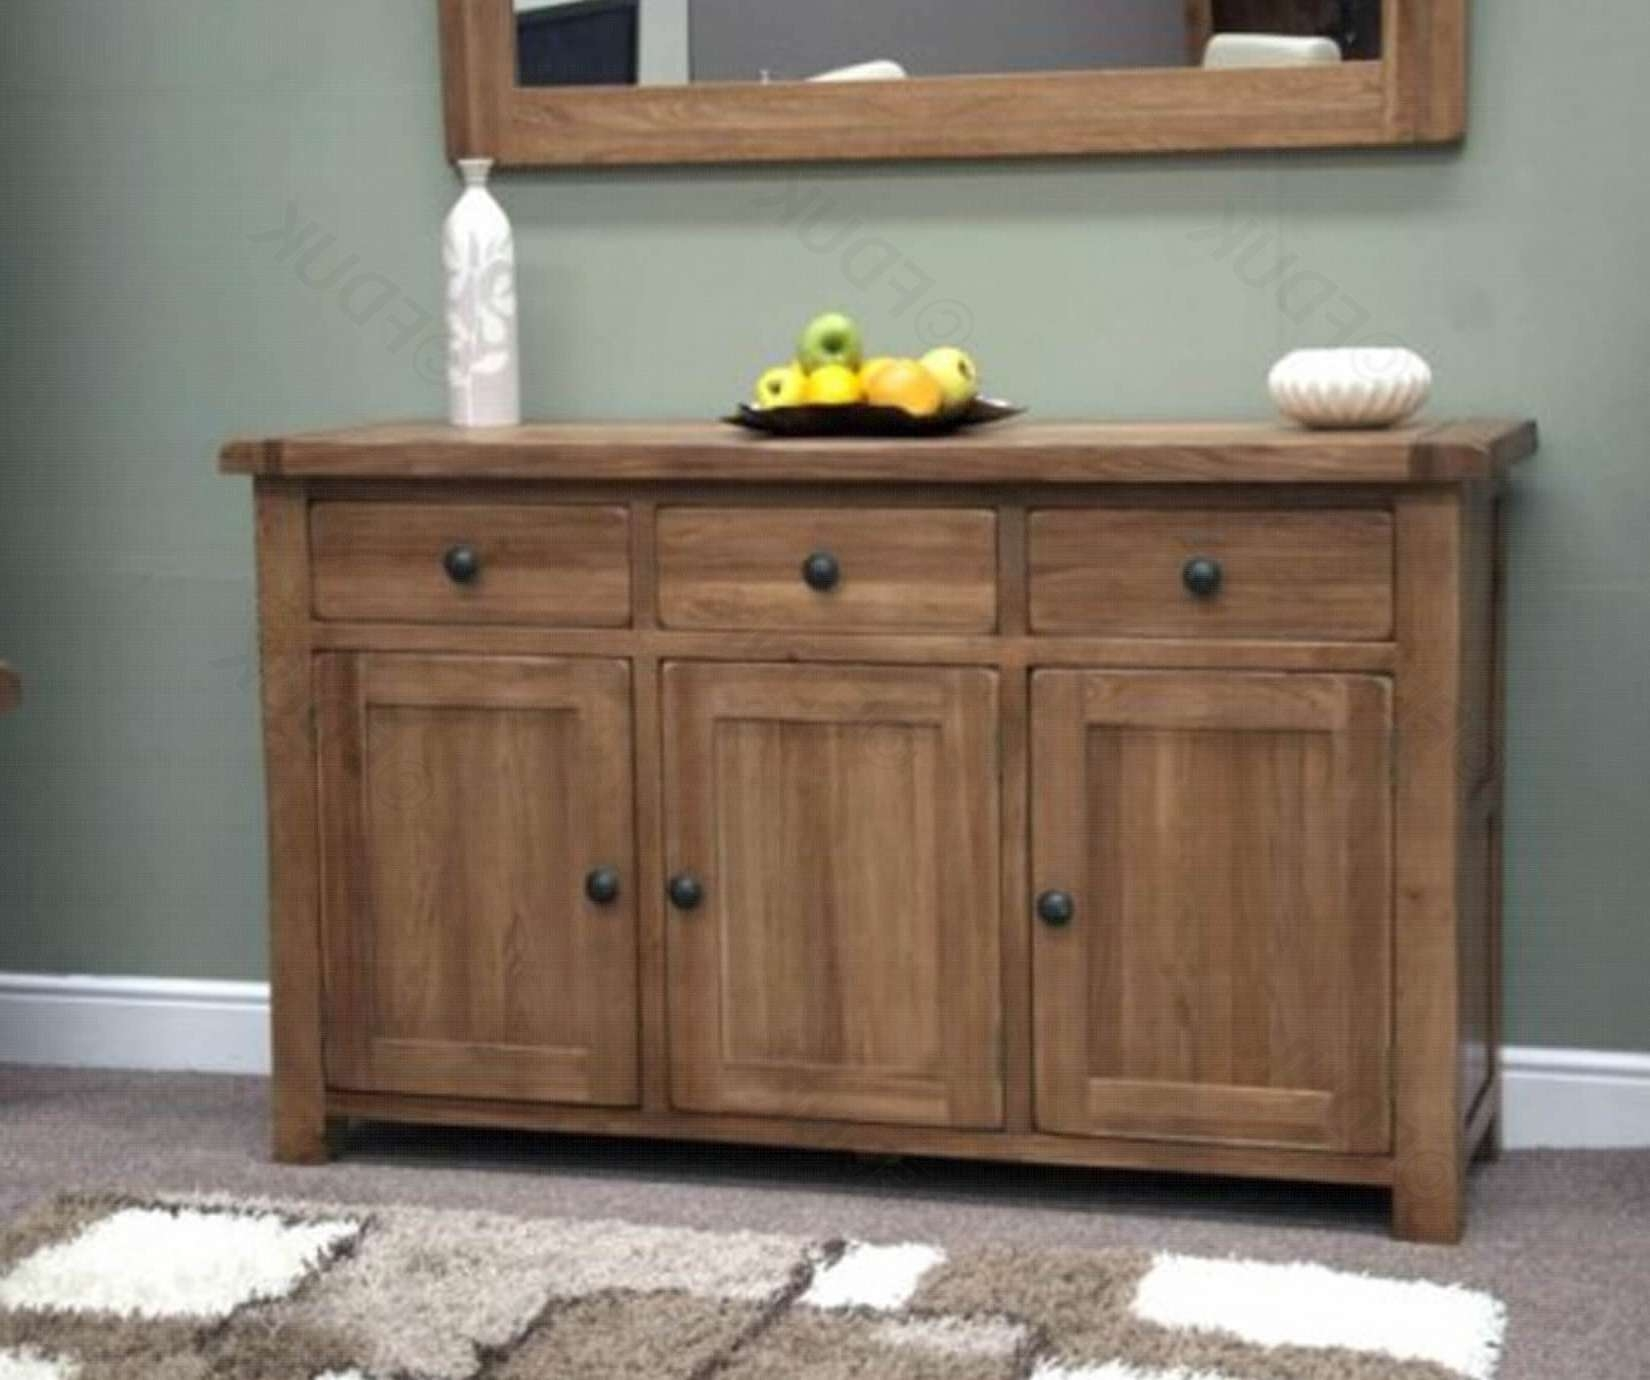 Homestyle Gb | Rustic Oak Large Sideboard | Furnituredirectuk With Regard To Rustic Oak Large Sideboards (View 7 of 20)